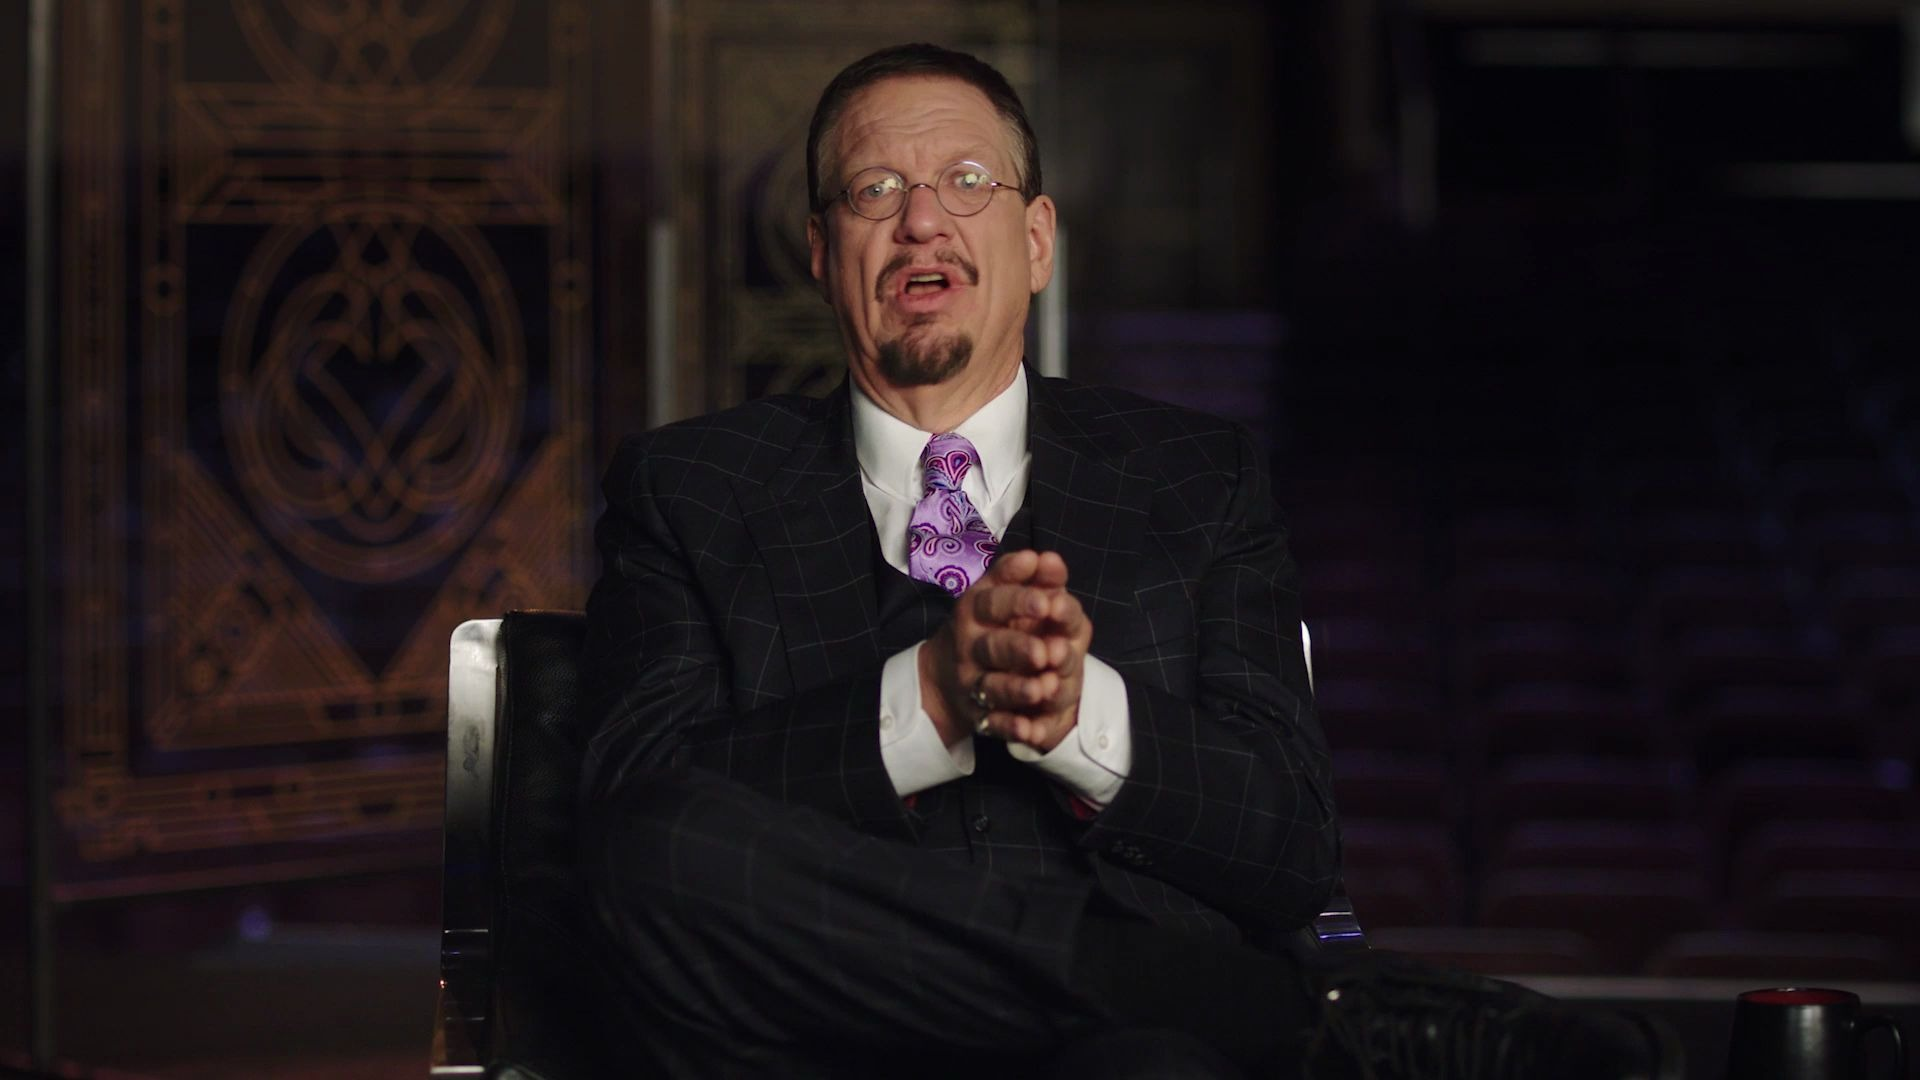 Penn & Teller_Masterclass on the Art of Magic